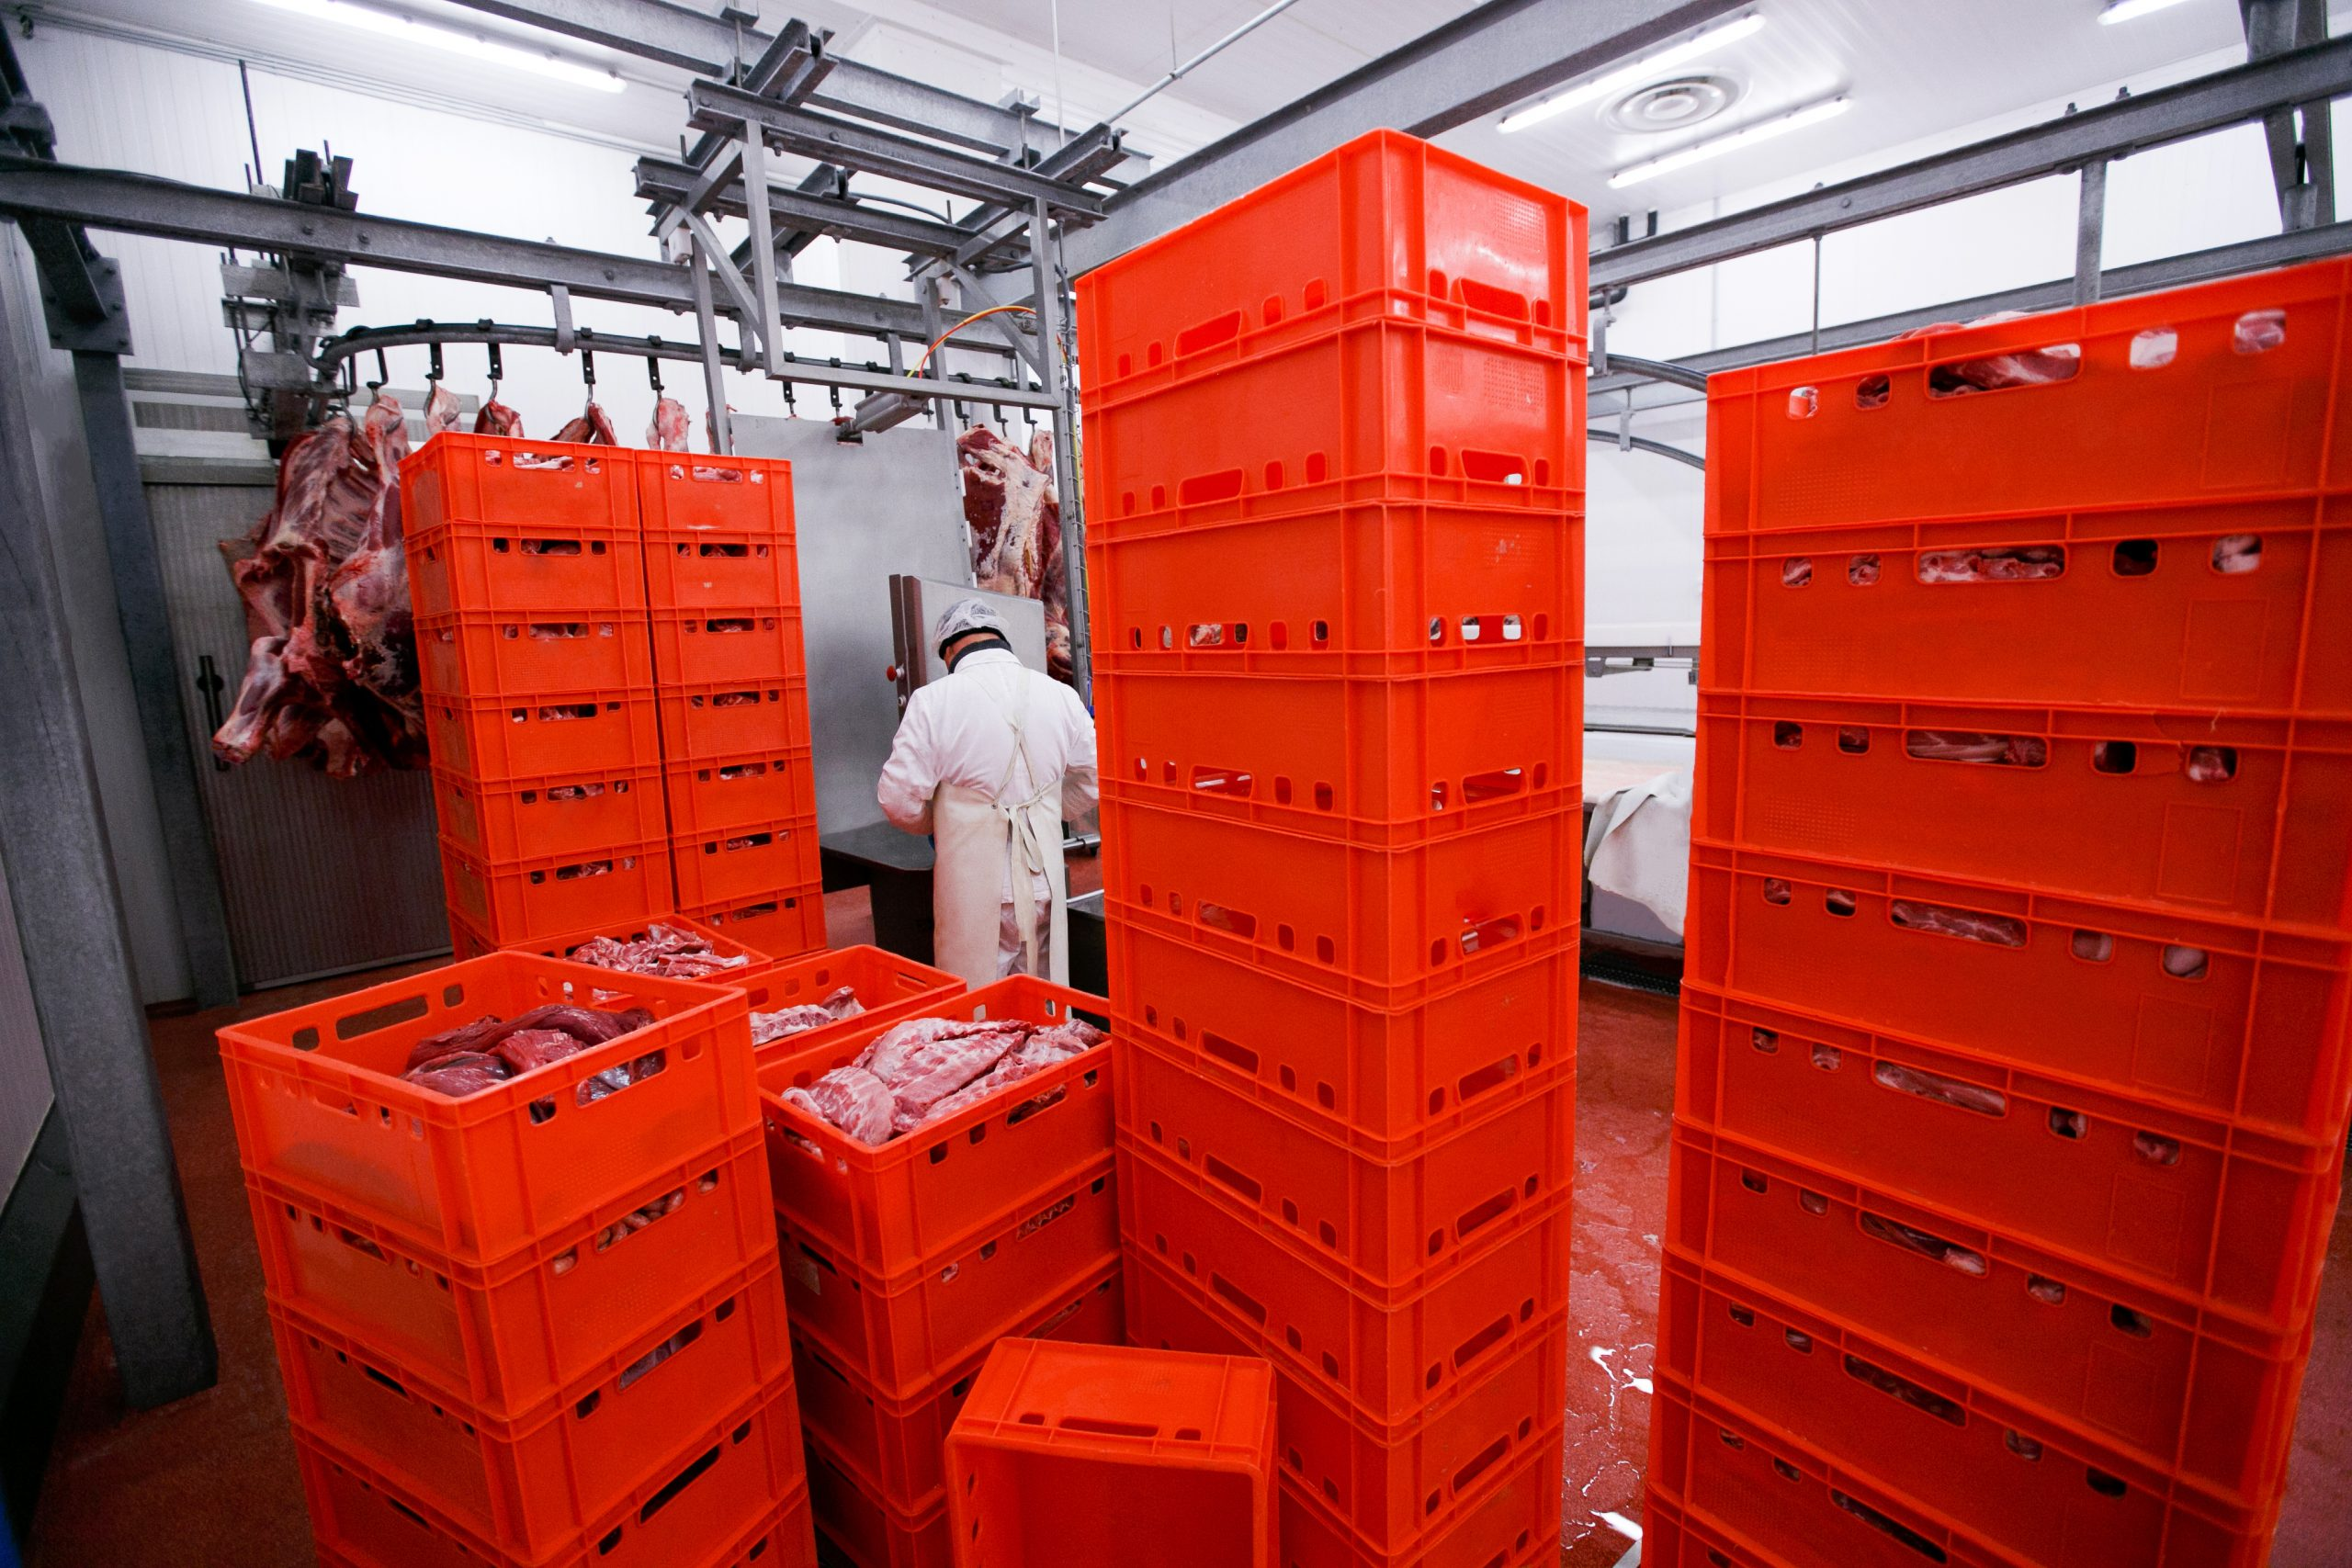 A lot of plastic red boxes with chopped fresh raw meat, a worker arranged a stored in a meat factory, industry process. Horizontal view.